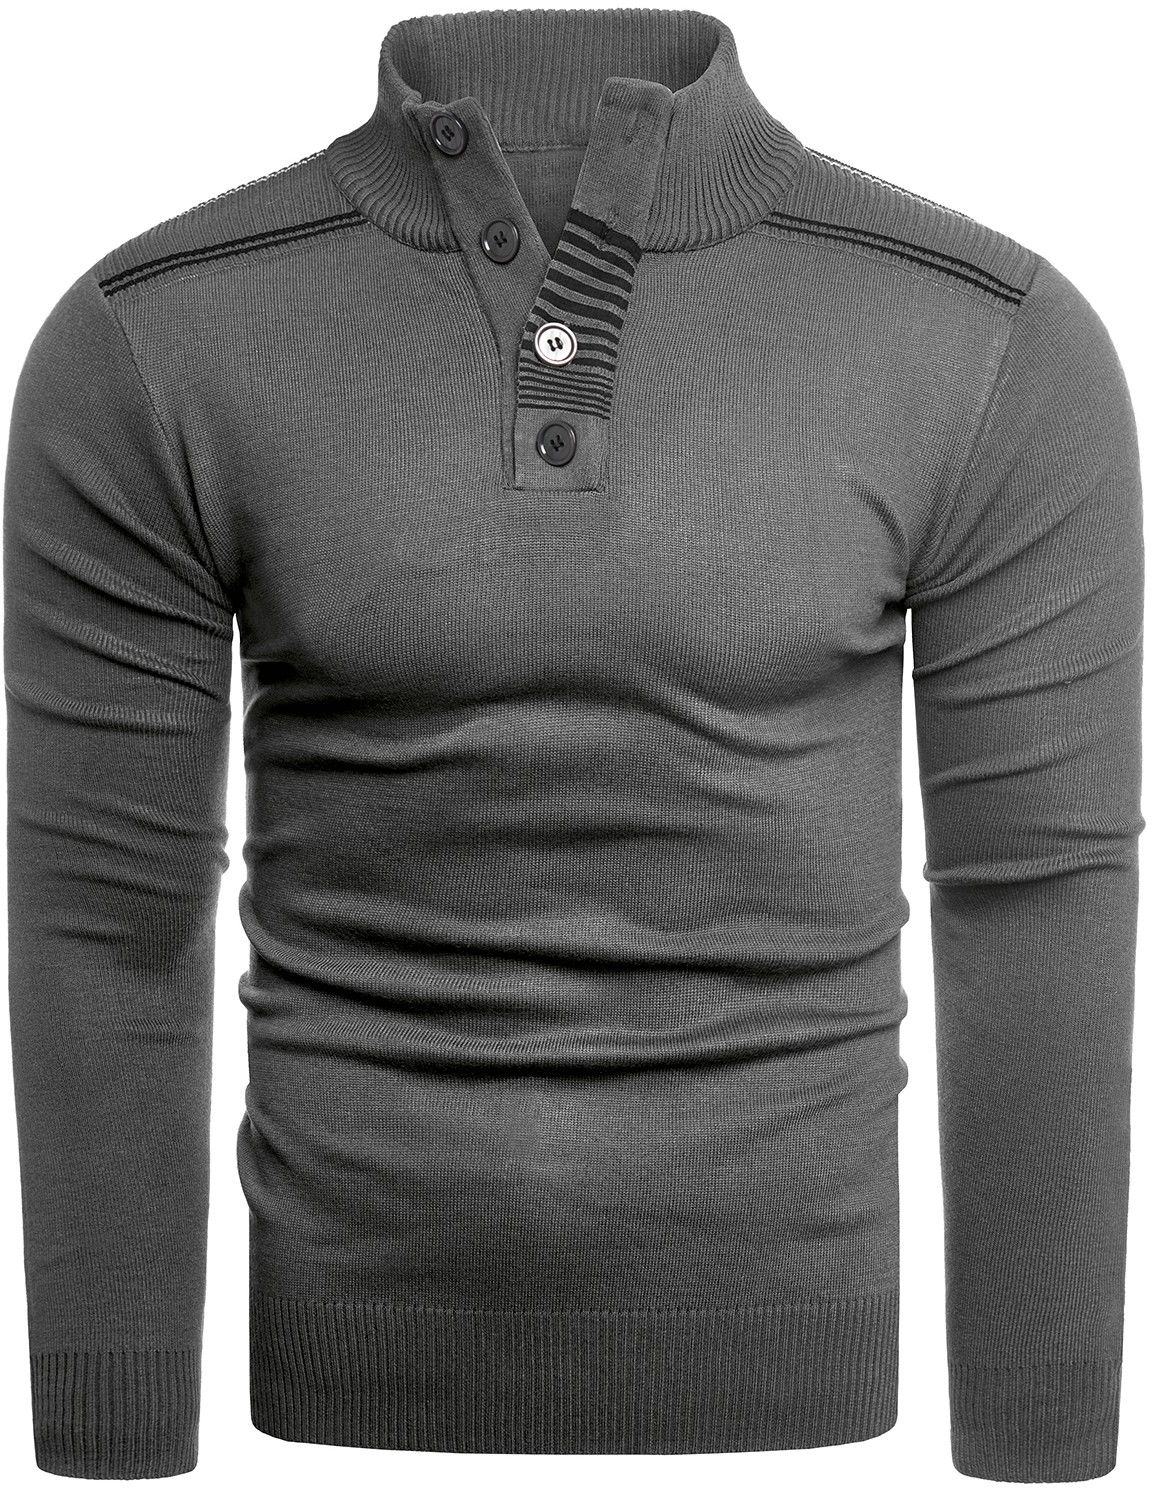 Sweter H2051 - antracyt